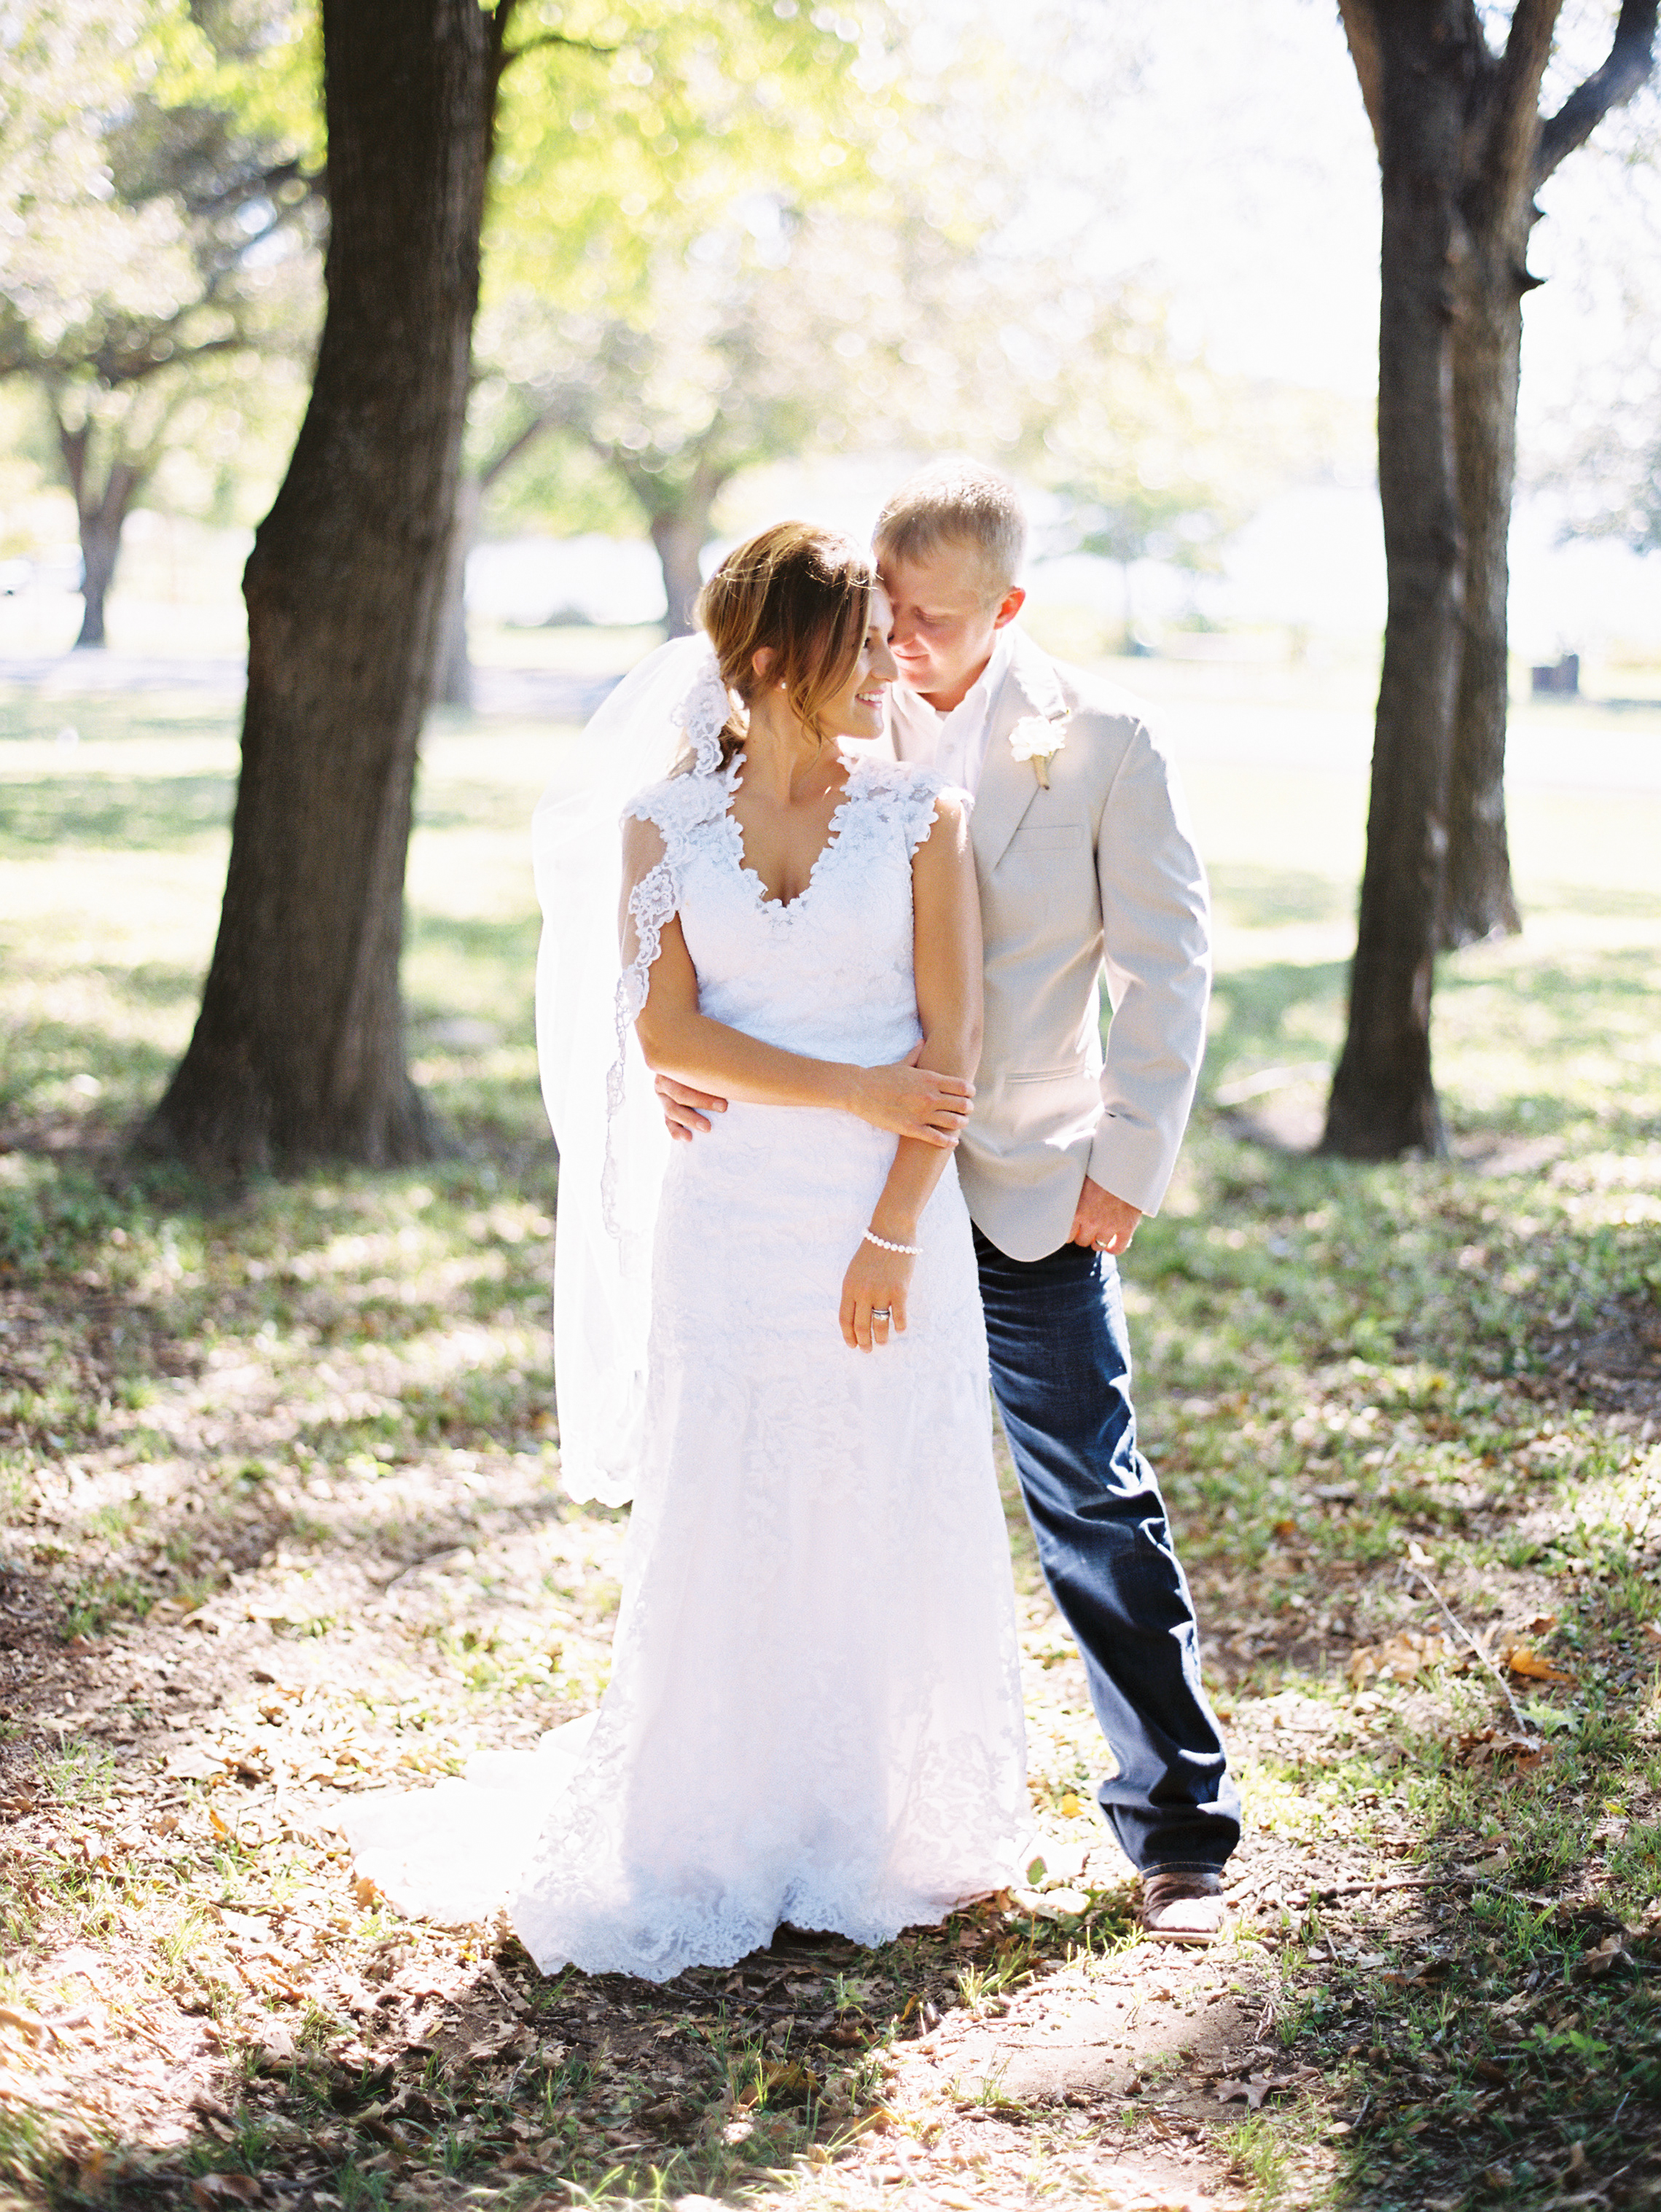 Dallas Wedding Photographer 349.JPG